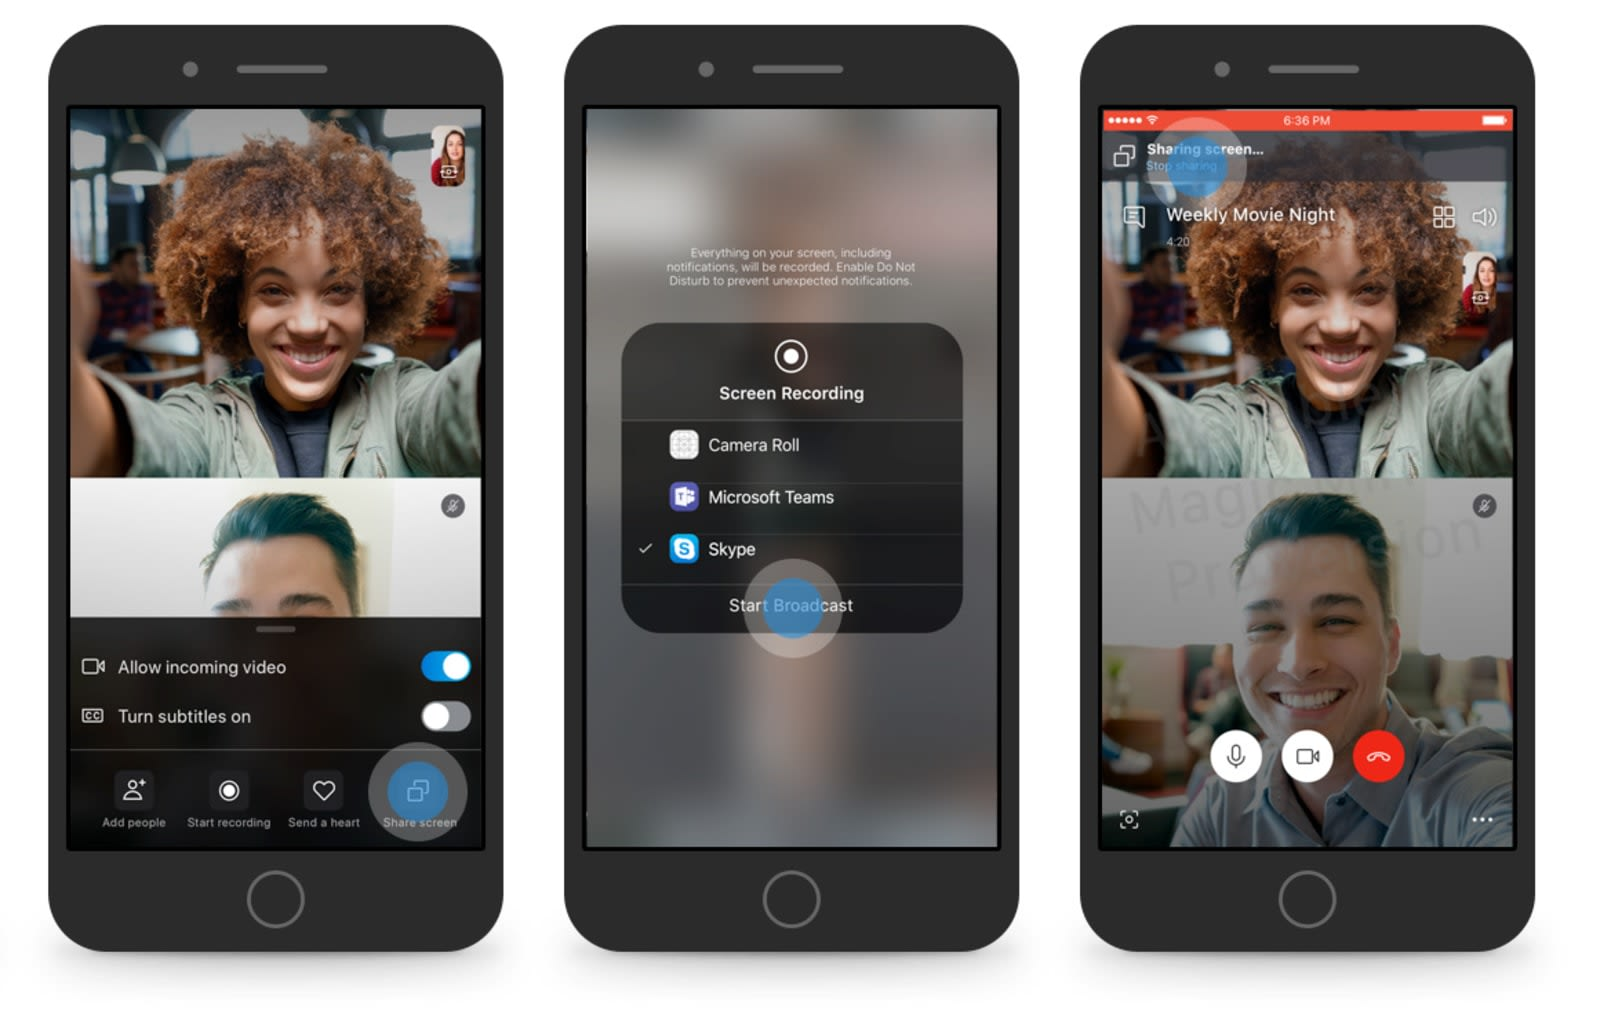 How to video skype on iphone